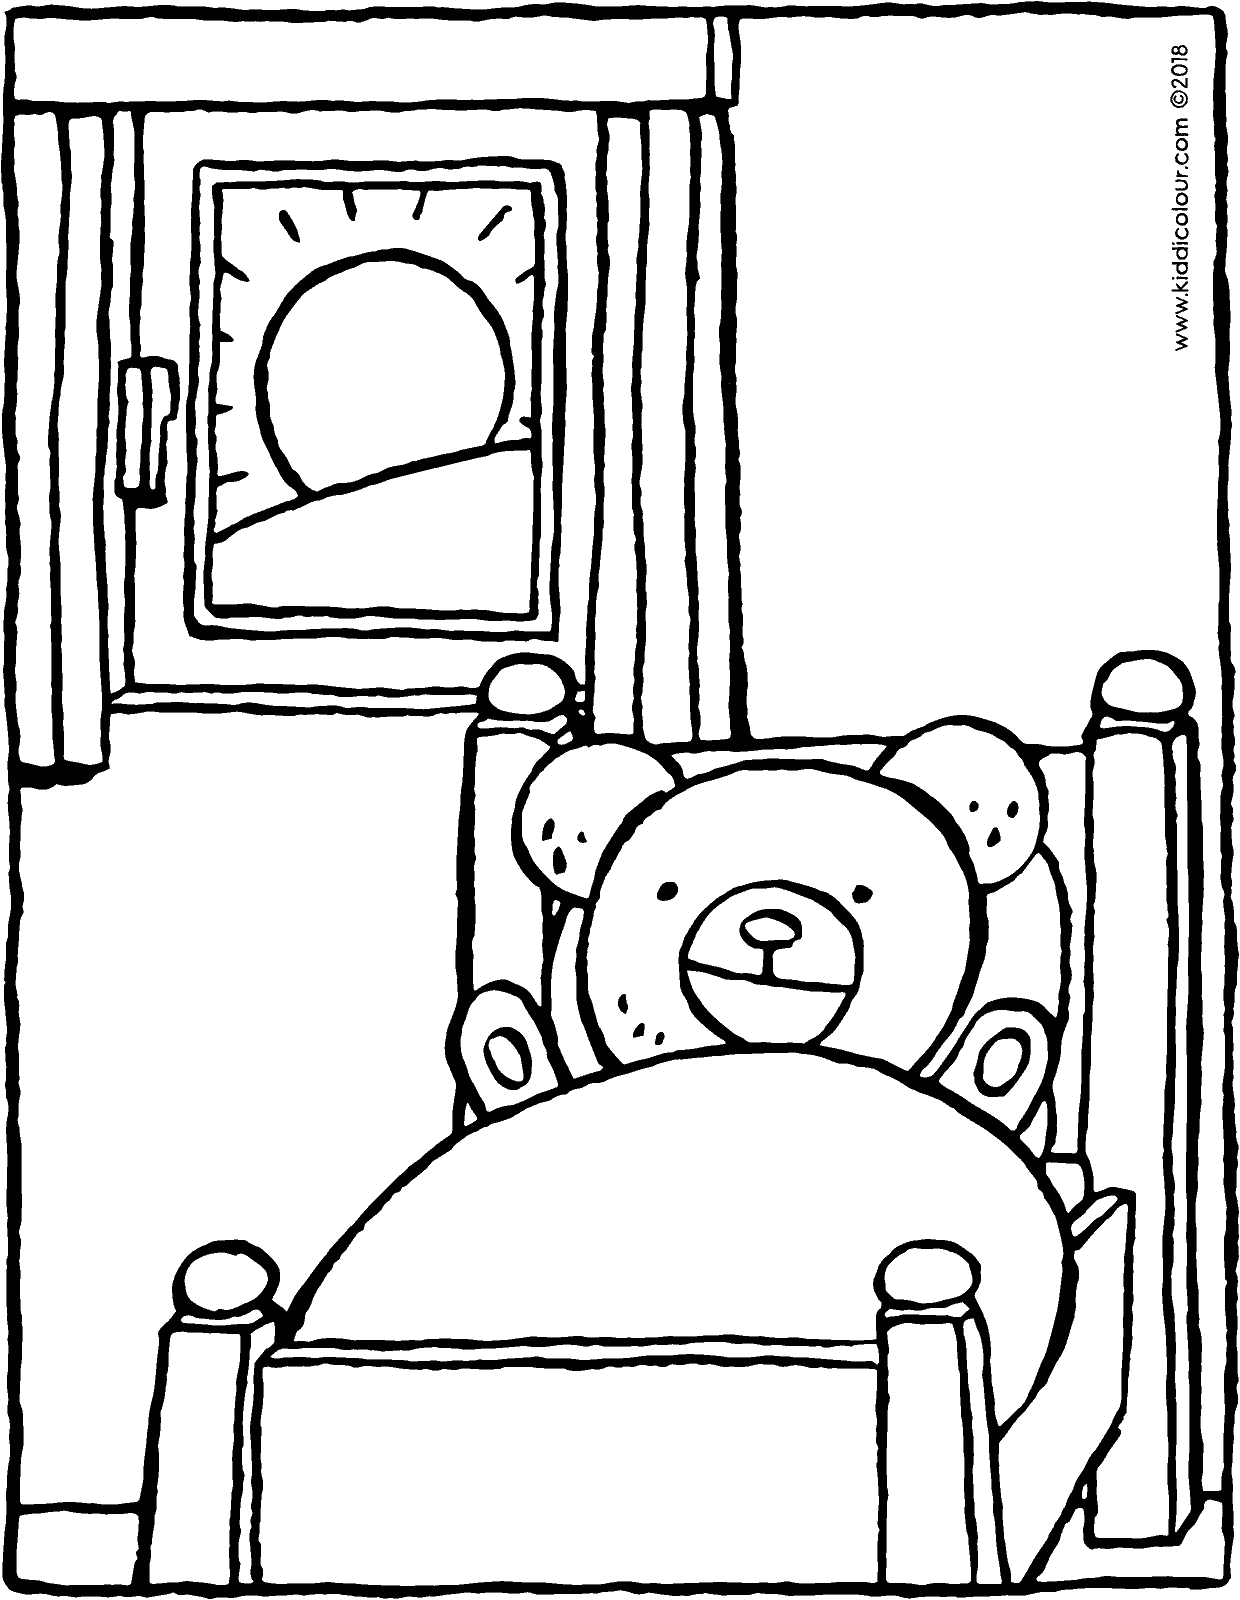 teddy bear wakes up in bed colouring page drawing picture 01V